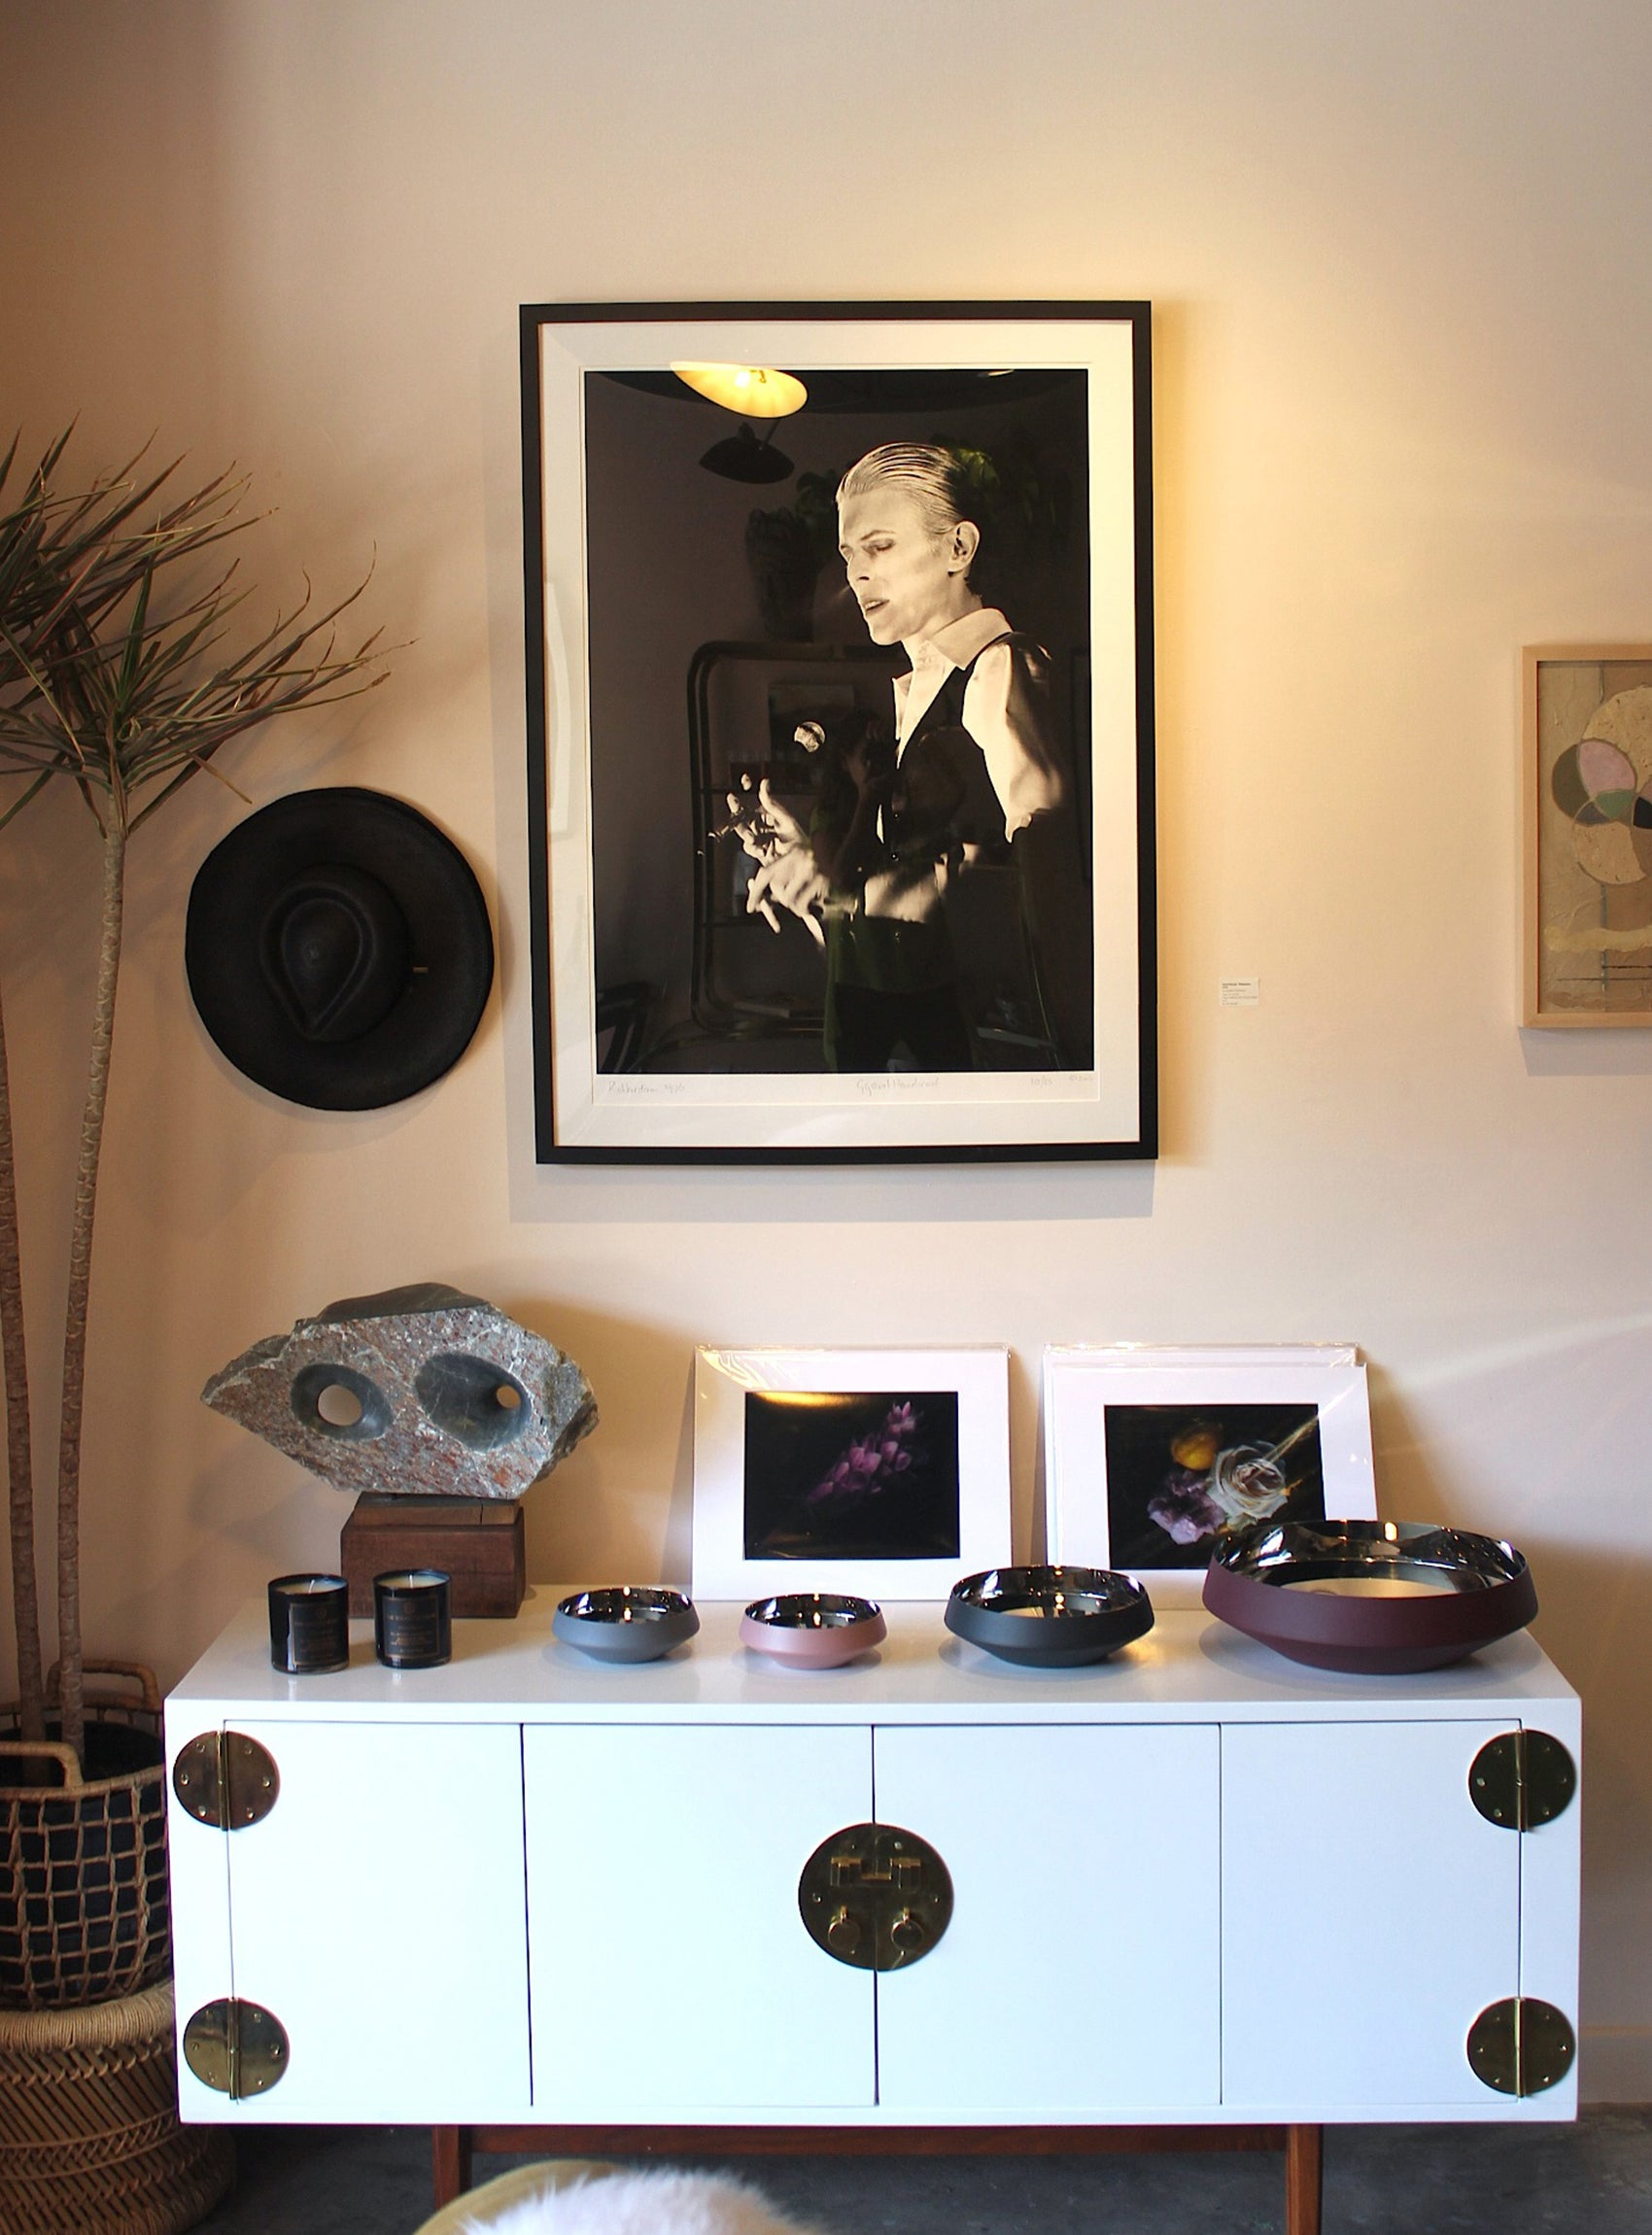 A framed photo of David Bowie hangs above a white table topped with different sized bowls.